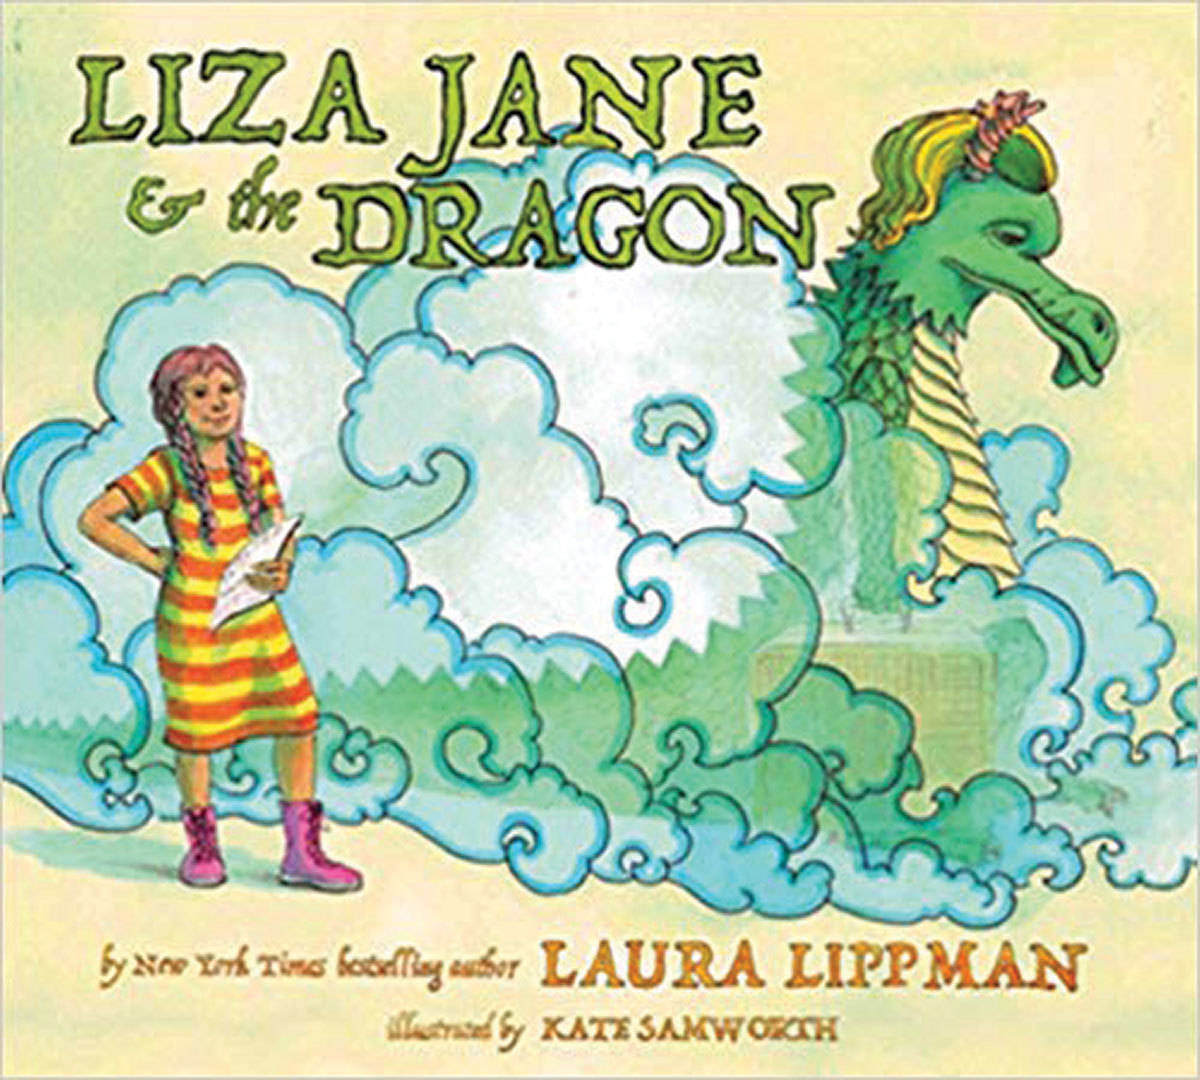 Laura-Jane-and-the-Dragon.jpg#asset:68162